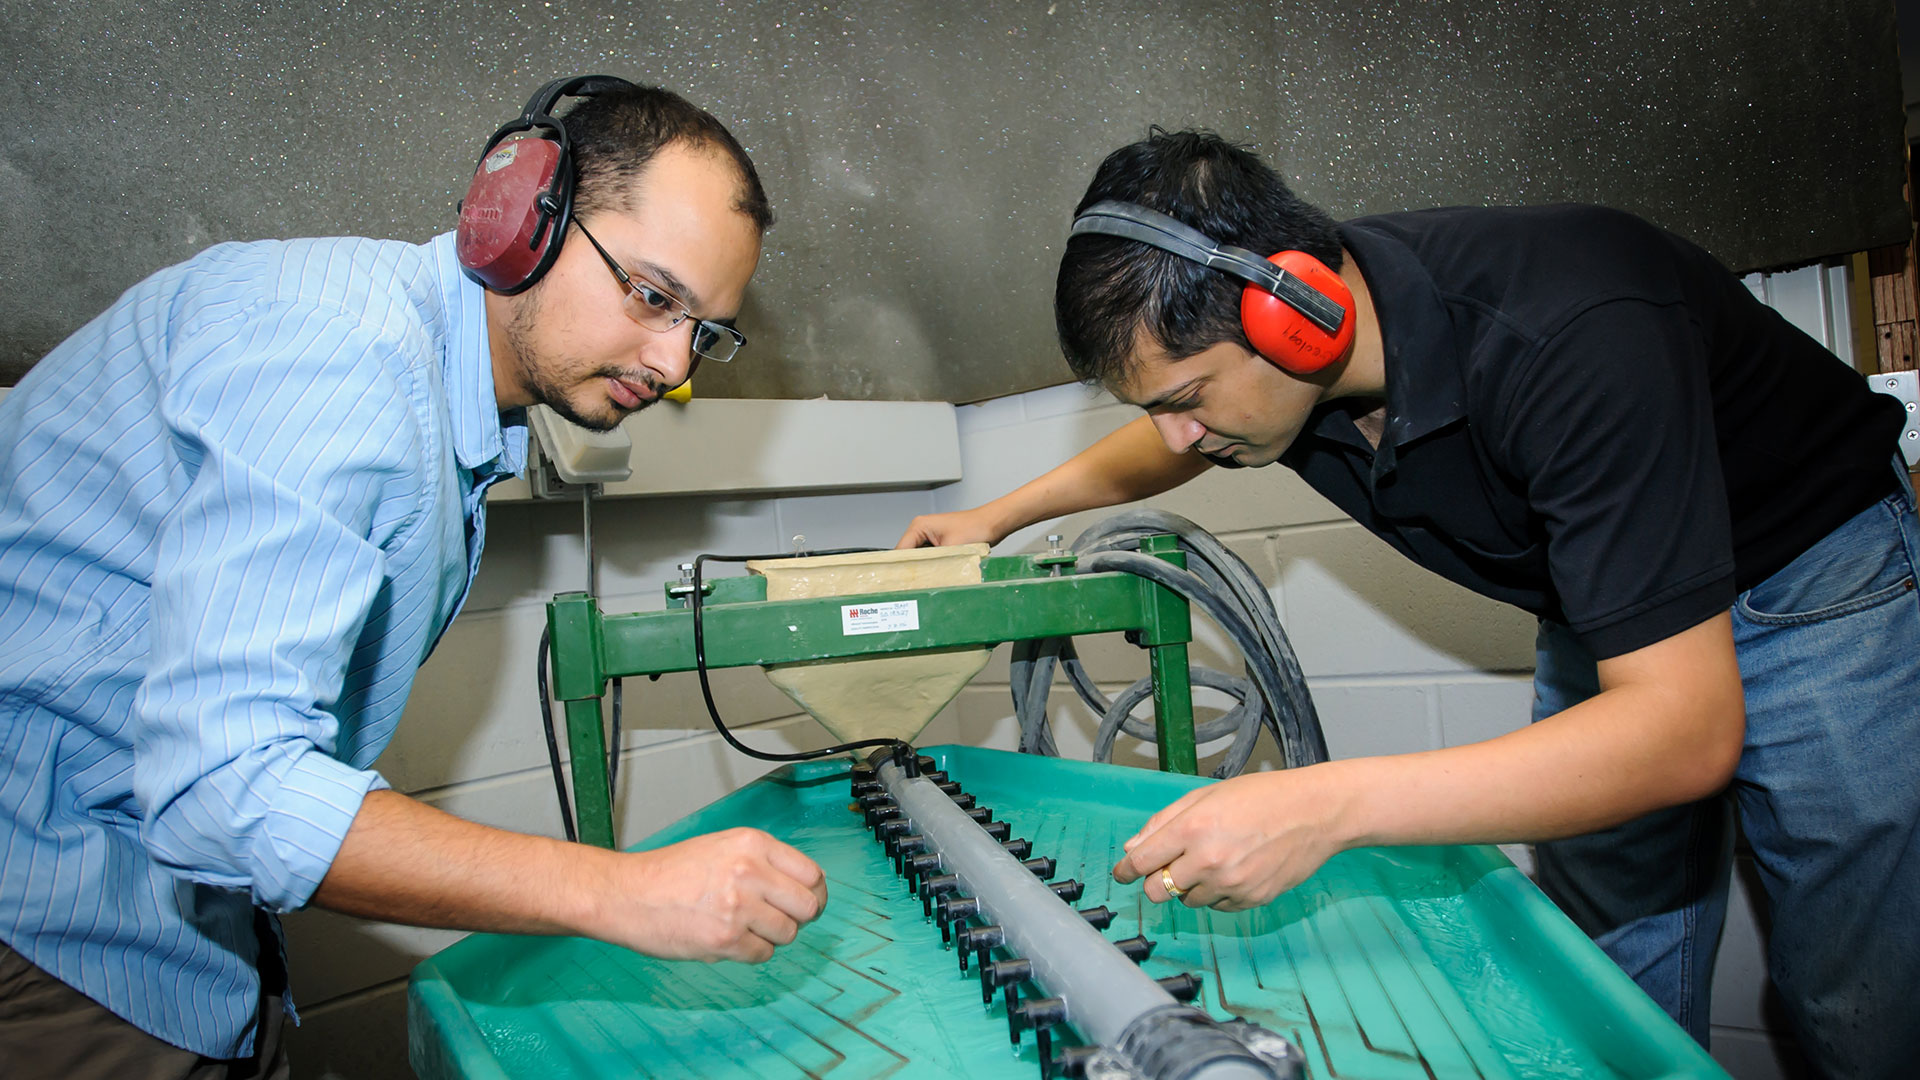 Two people with protective ear coverings work on a machine.